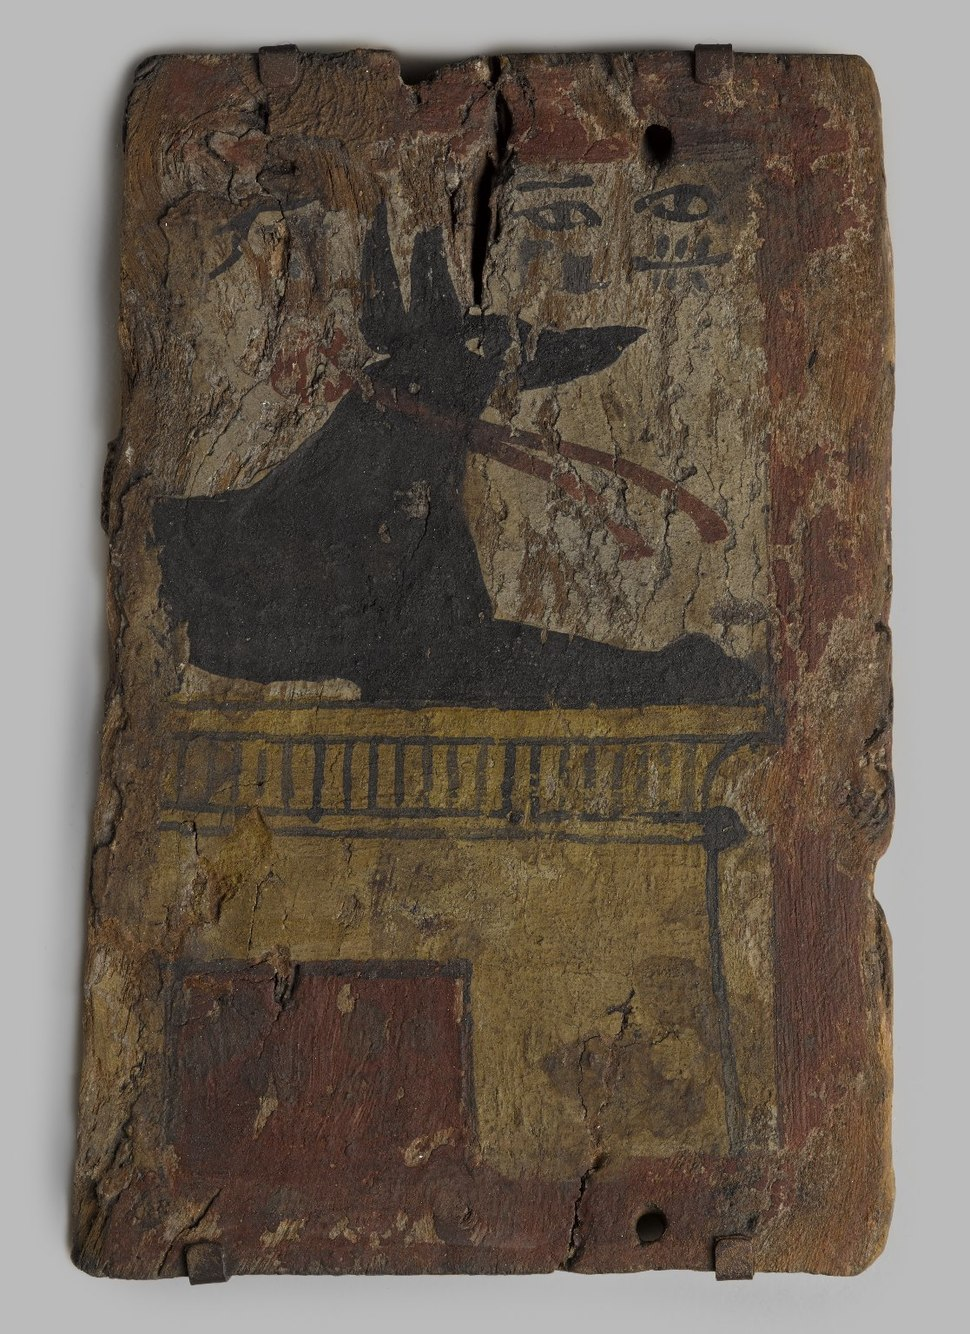 Coffin Fragment with Image of Anubis 37.2047E